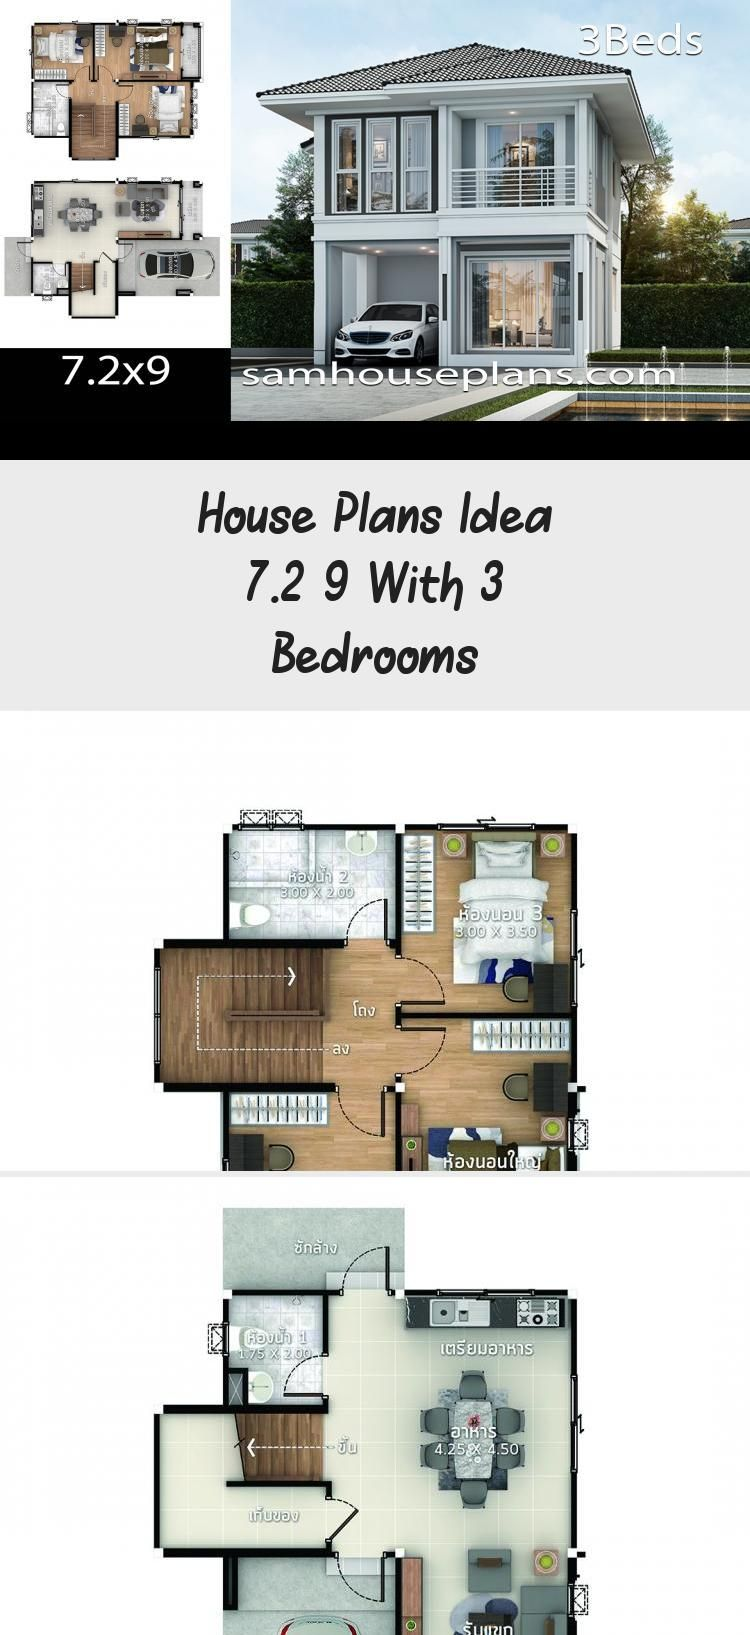 House Plans Idea 7 2x9 With 3 Bedrooms Sam House Plans Narrowmodernhouseplans Modernhou In 2020 House Plans Mid Century Modern House Plans House Plans South Africa